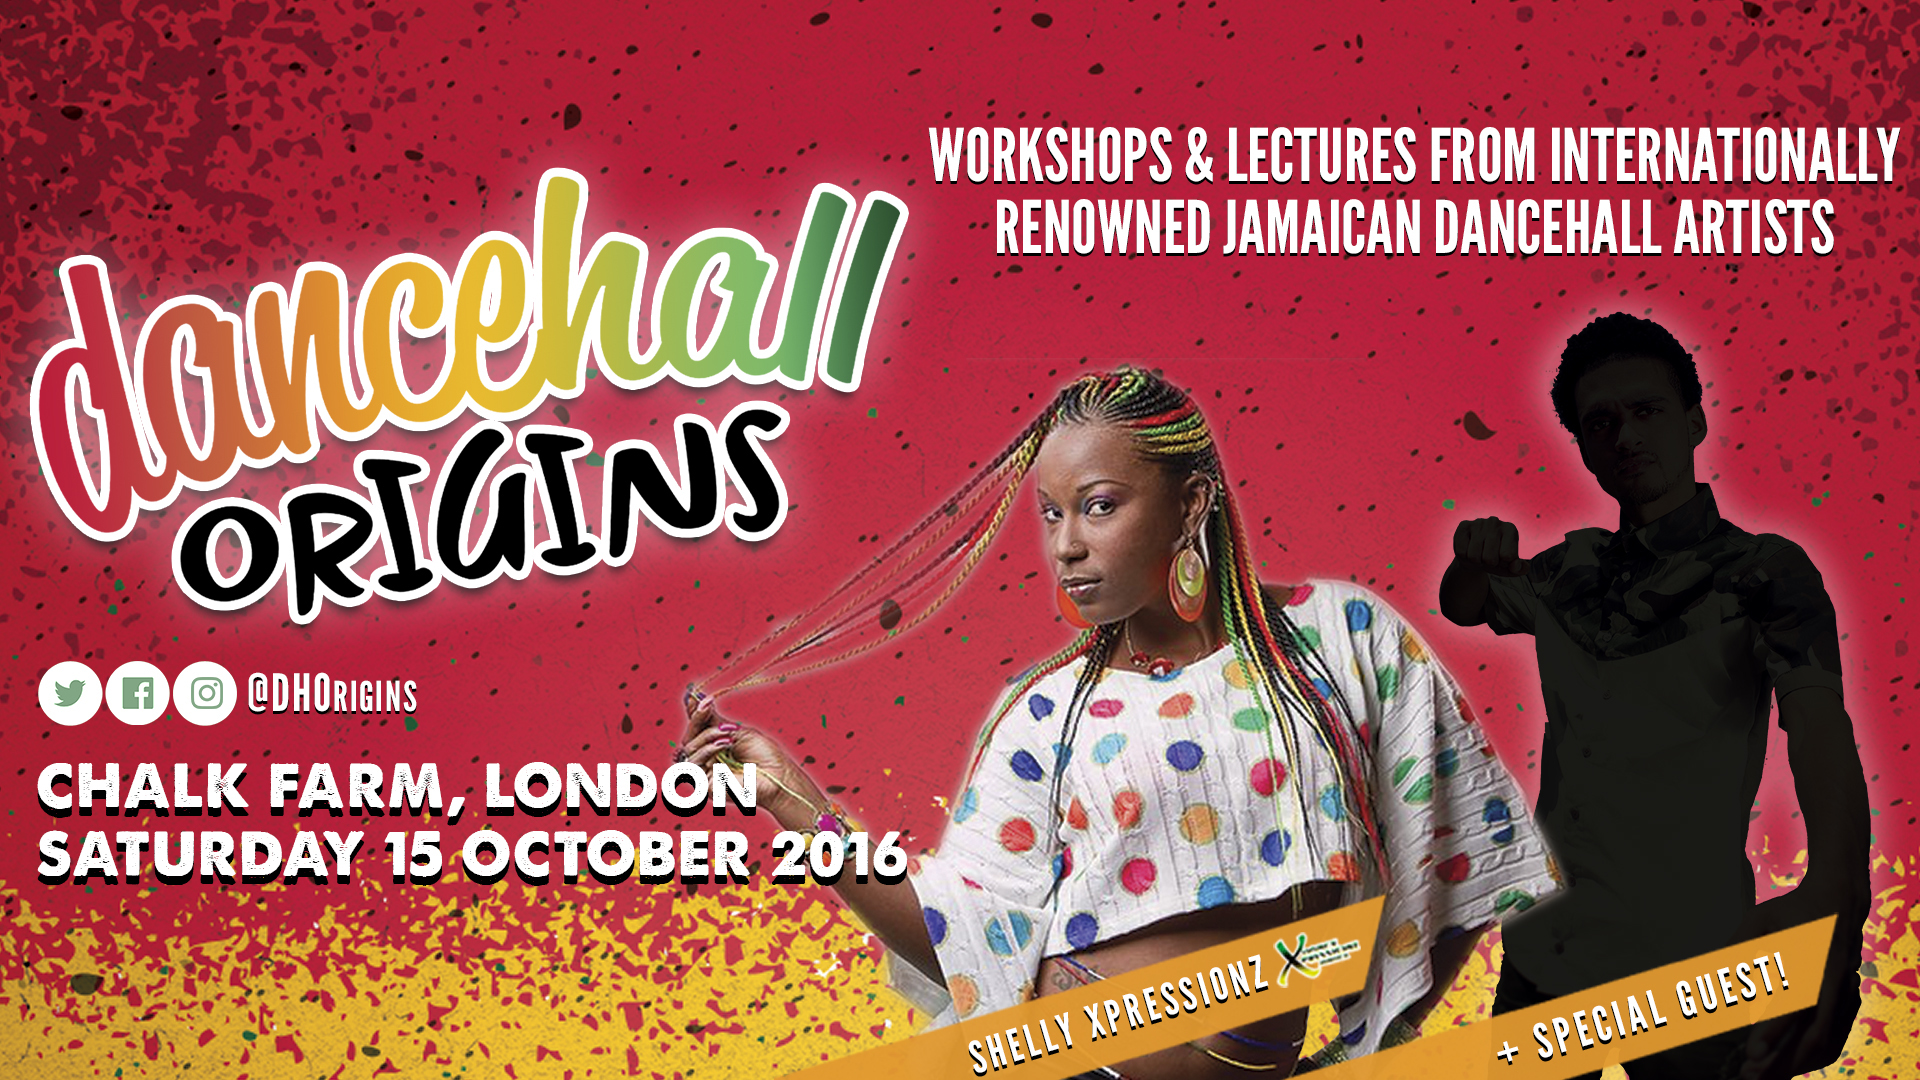 Dancehall Origins, 15 Oct 2016